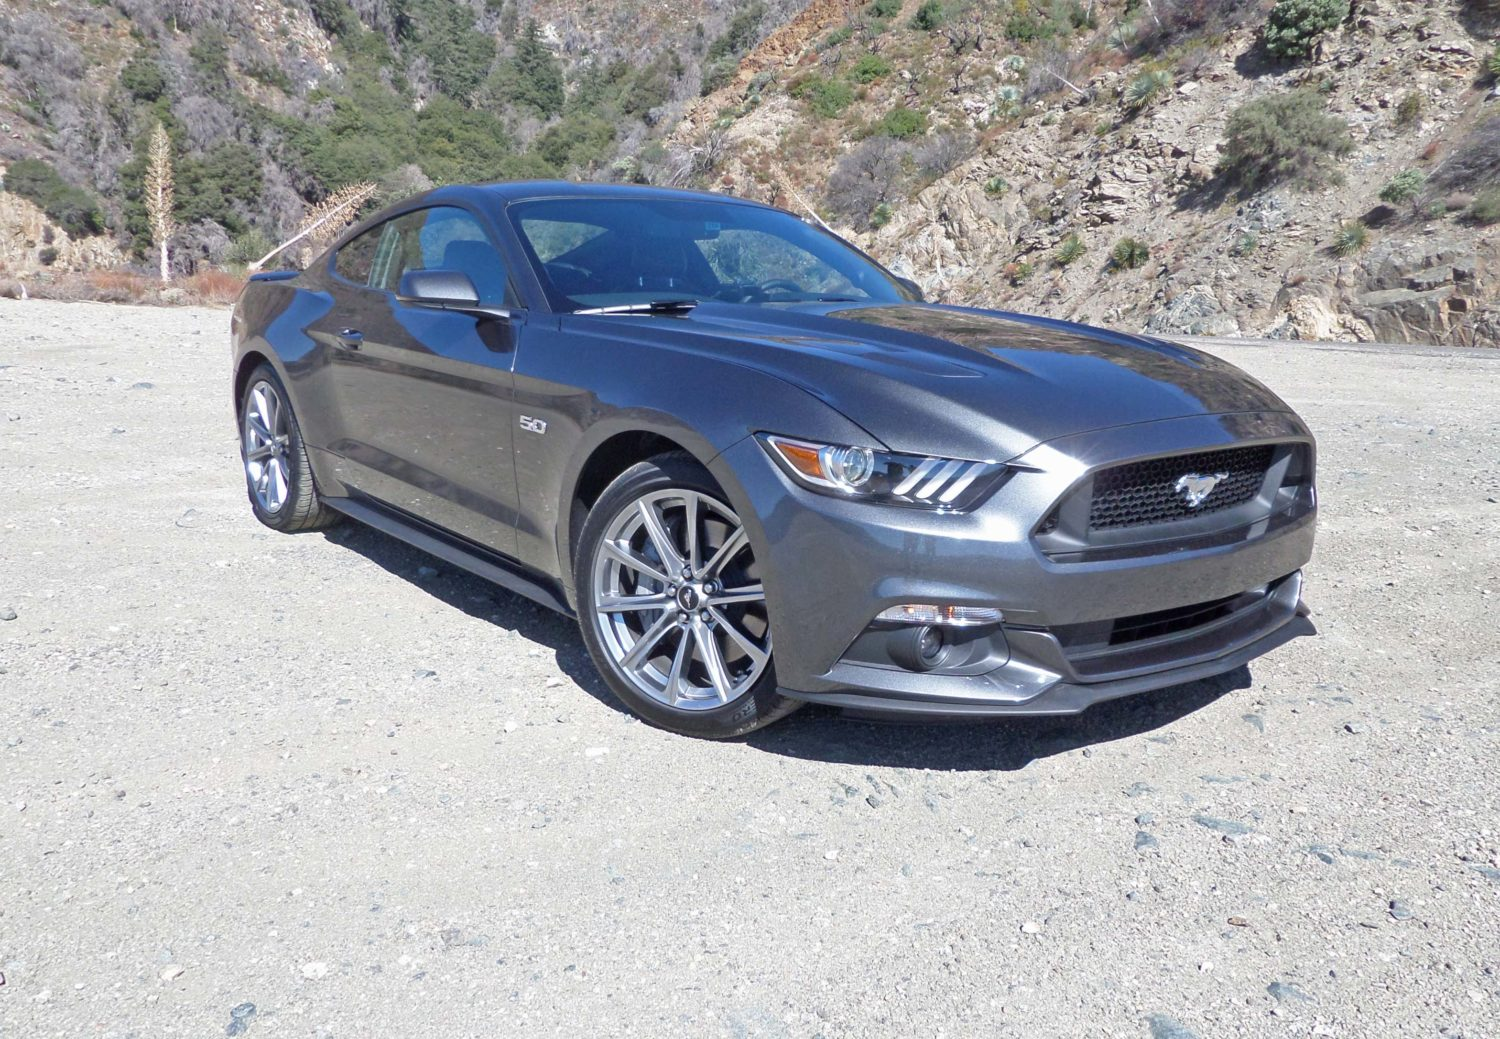 Ford Mustang RSF